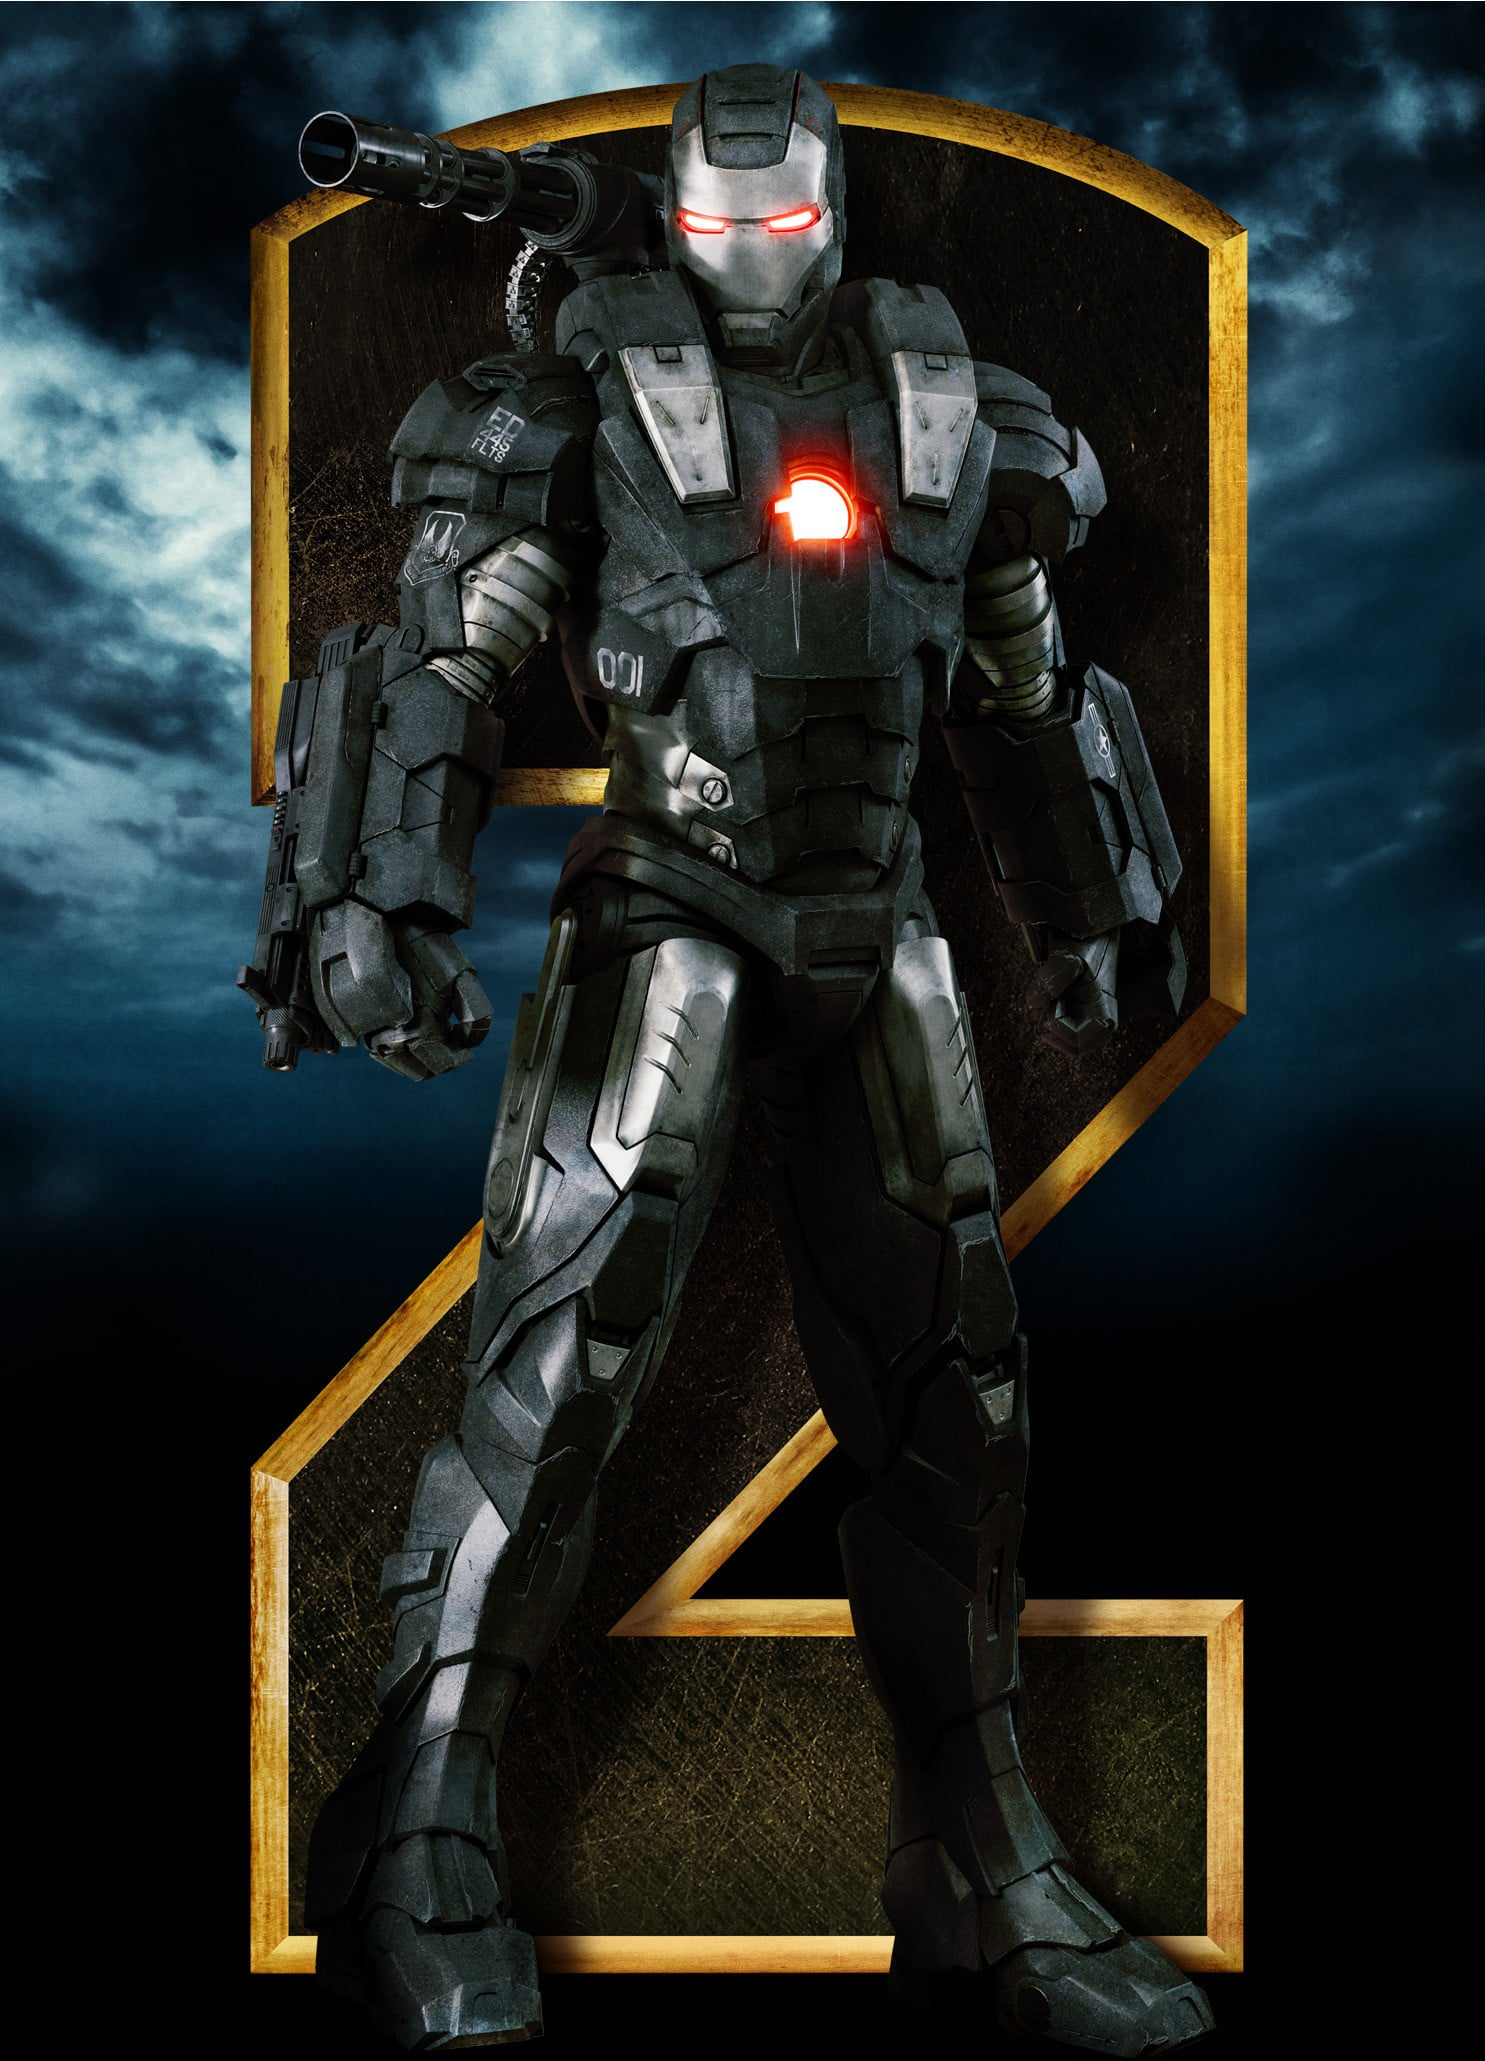 iron man poster high quality HD printable wallpapers 2010 iron patriot war machine